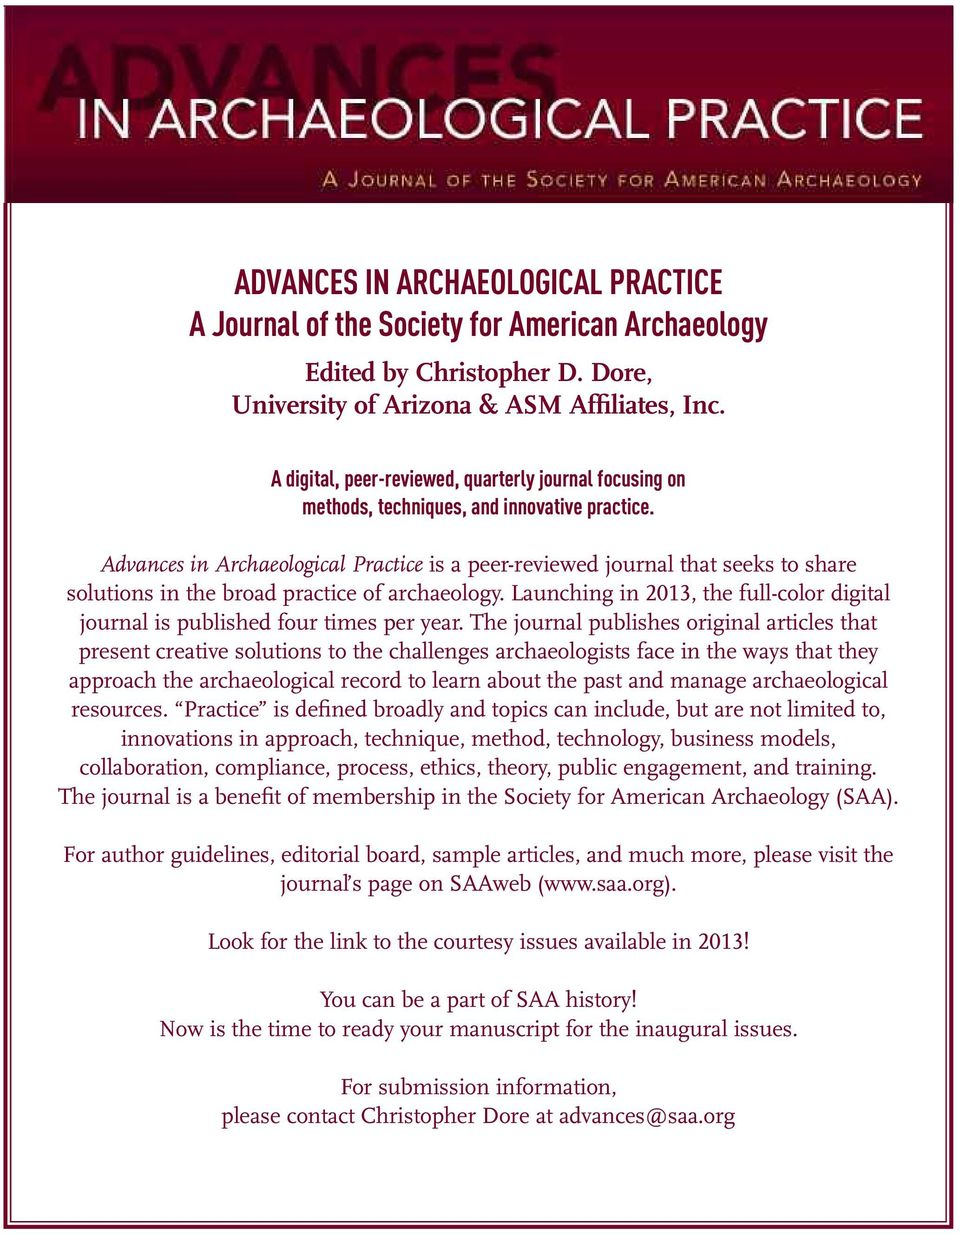 Advances in Archaeological Practice is a peer-reviewed journal that seeks to share solutions in the broad practice of archaeology.